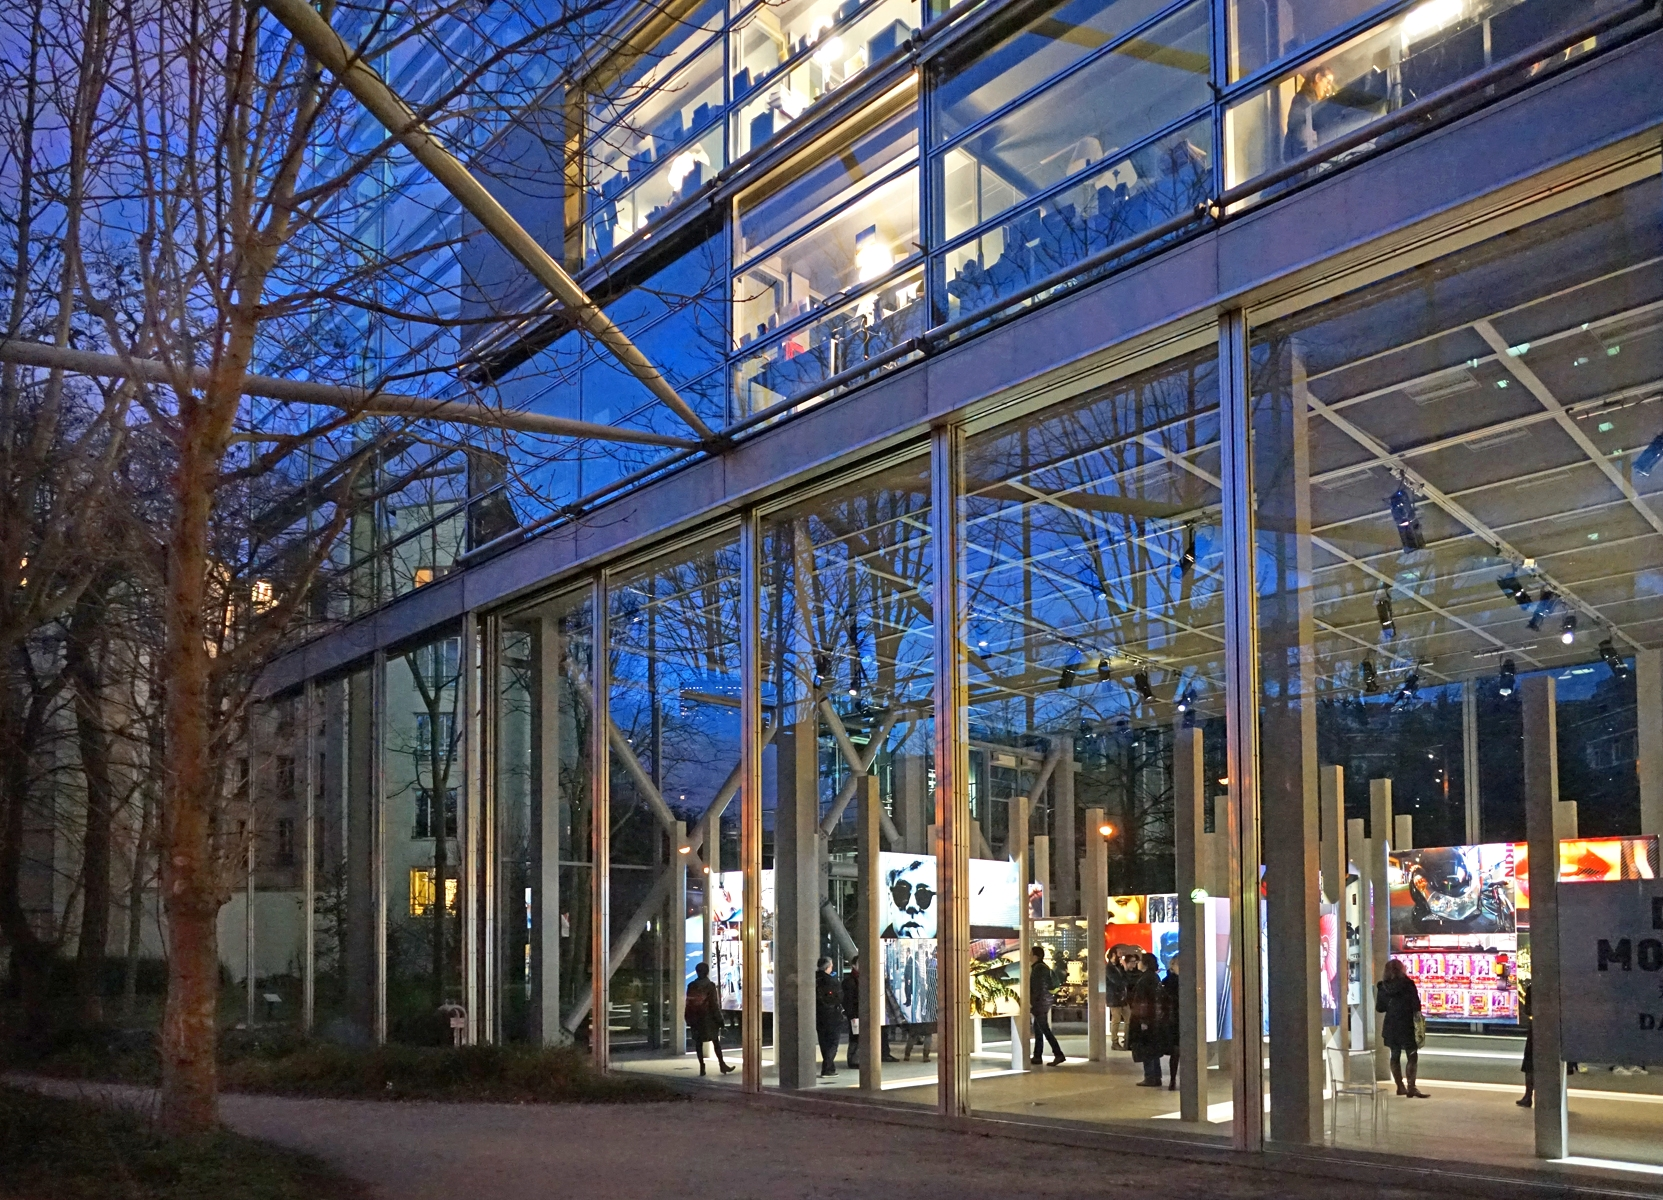 The Fondation Cartier is housed in an impressive glass building